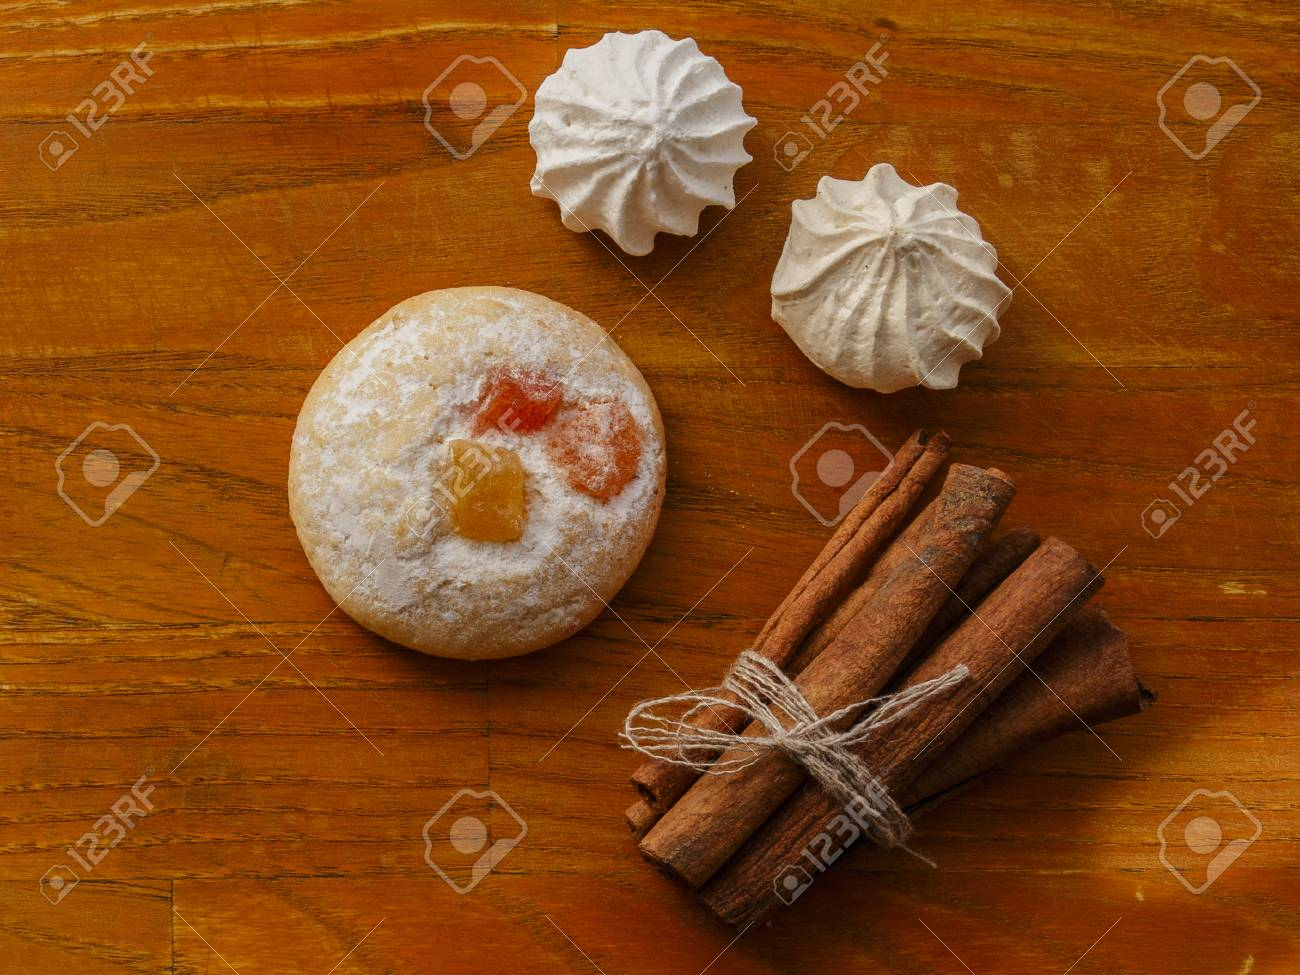 Cookie And Meringues And Cinnamon Sticks On Wooden Table Top